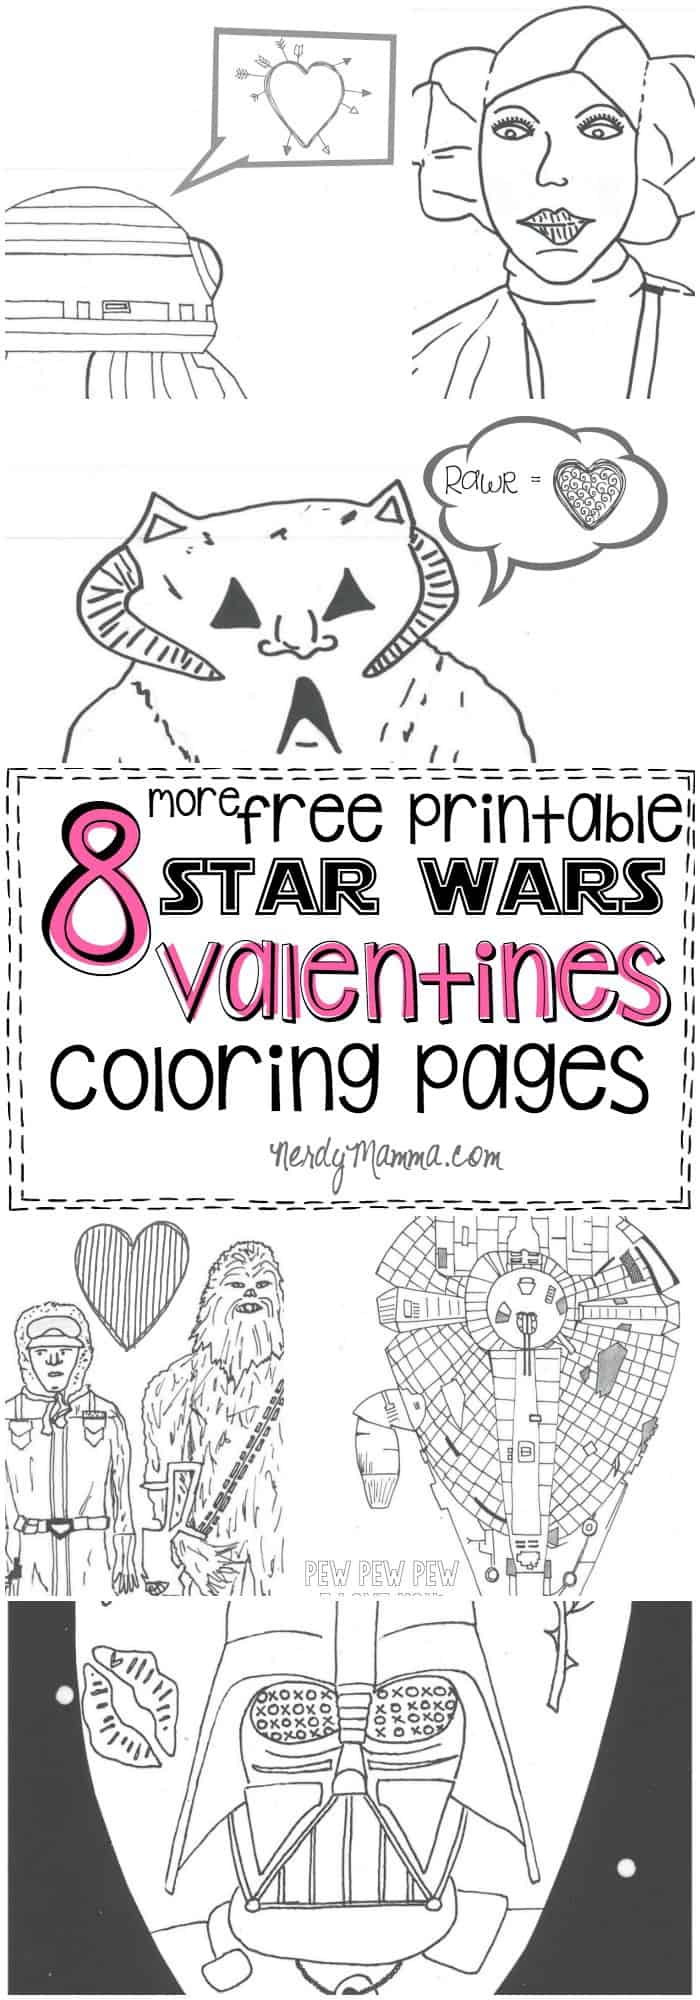 These free printable Star Wars valentines coloring pages are so funny...and just cool enough to be cool even when its not valentines!